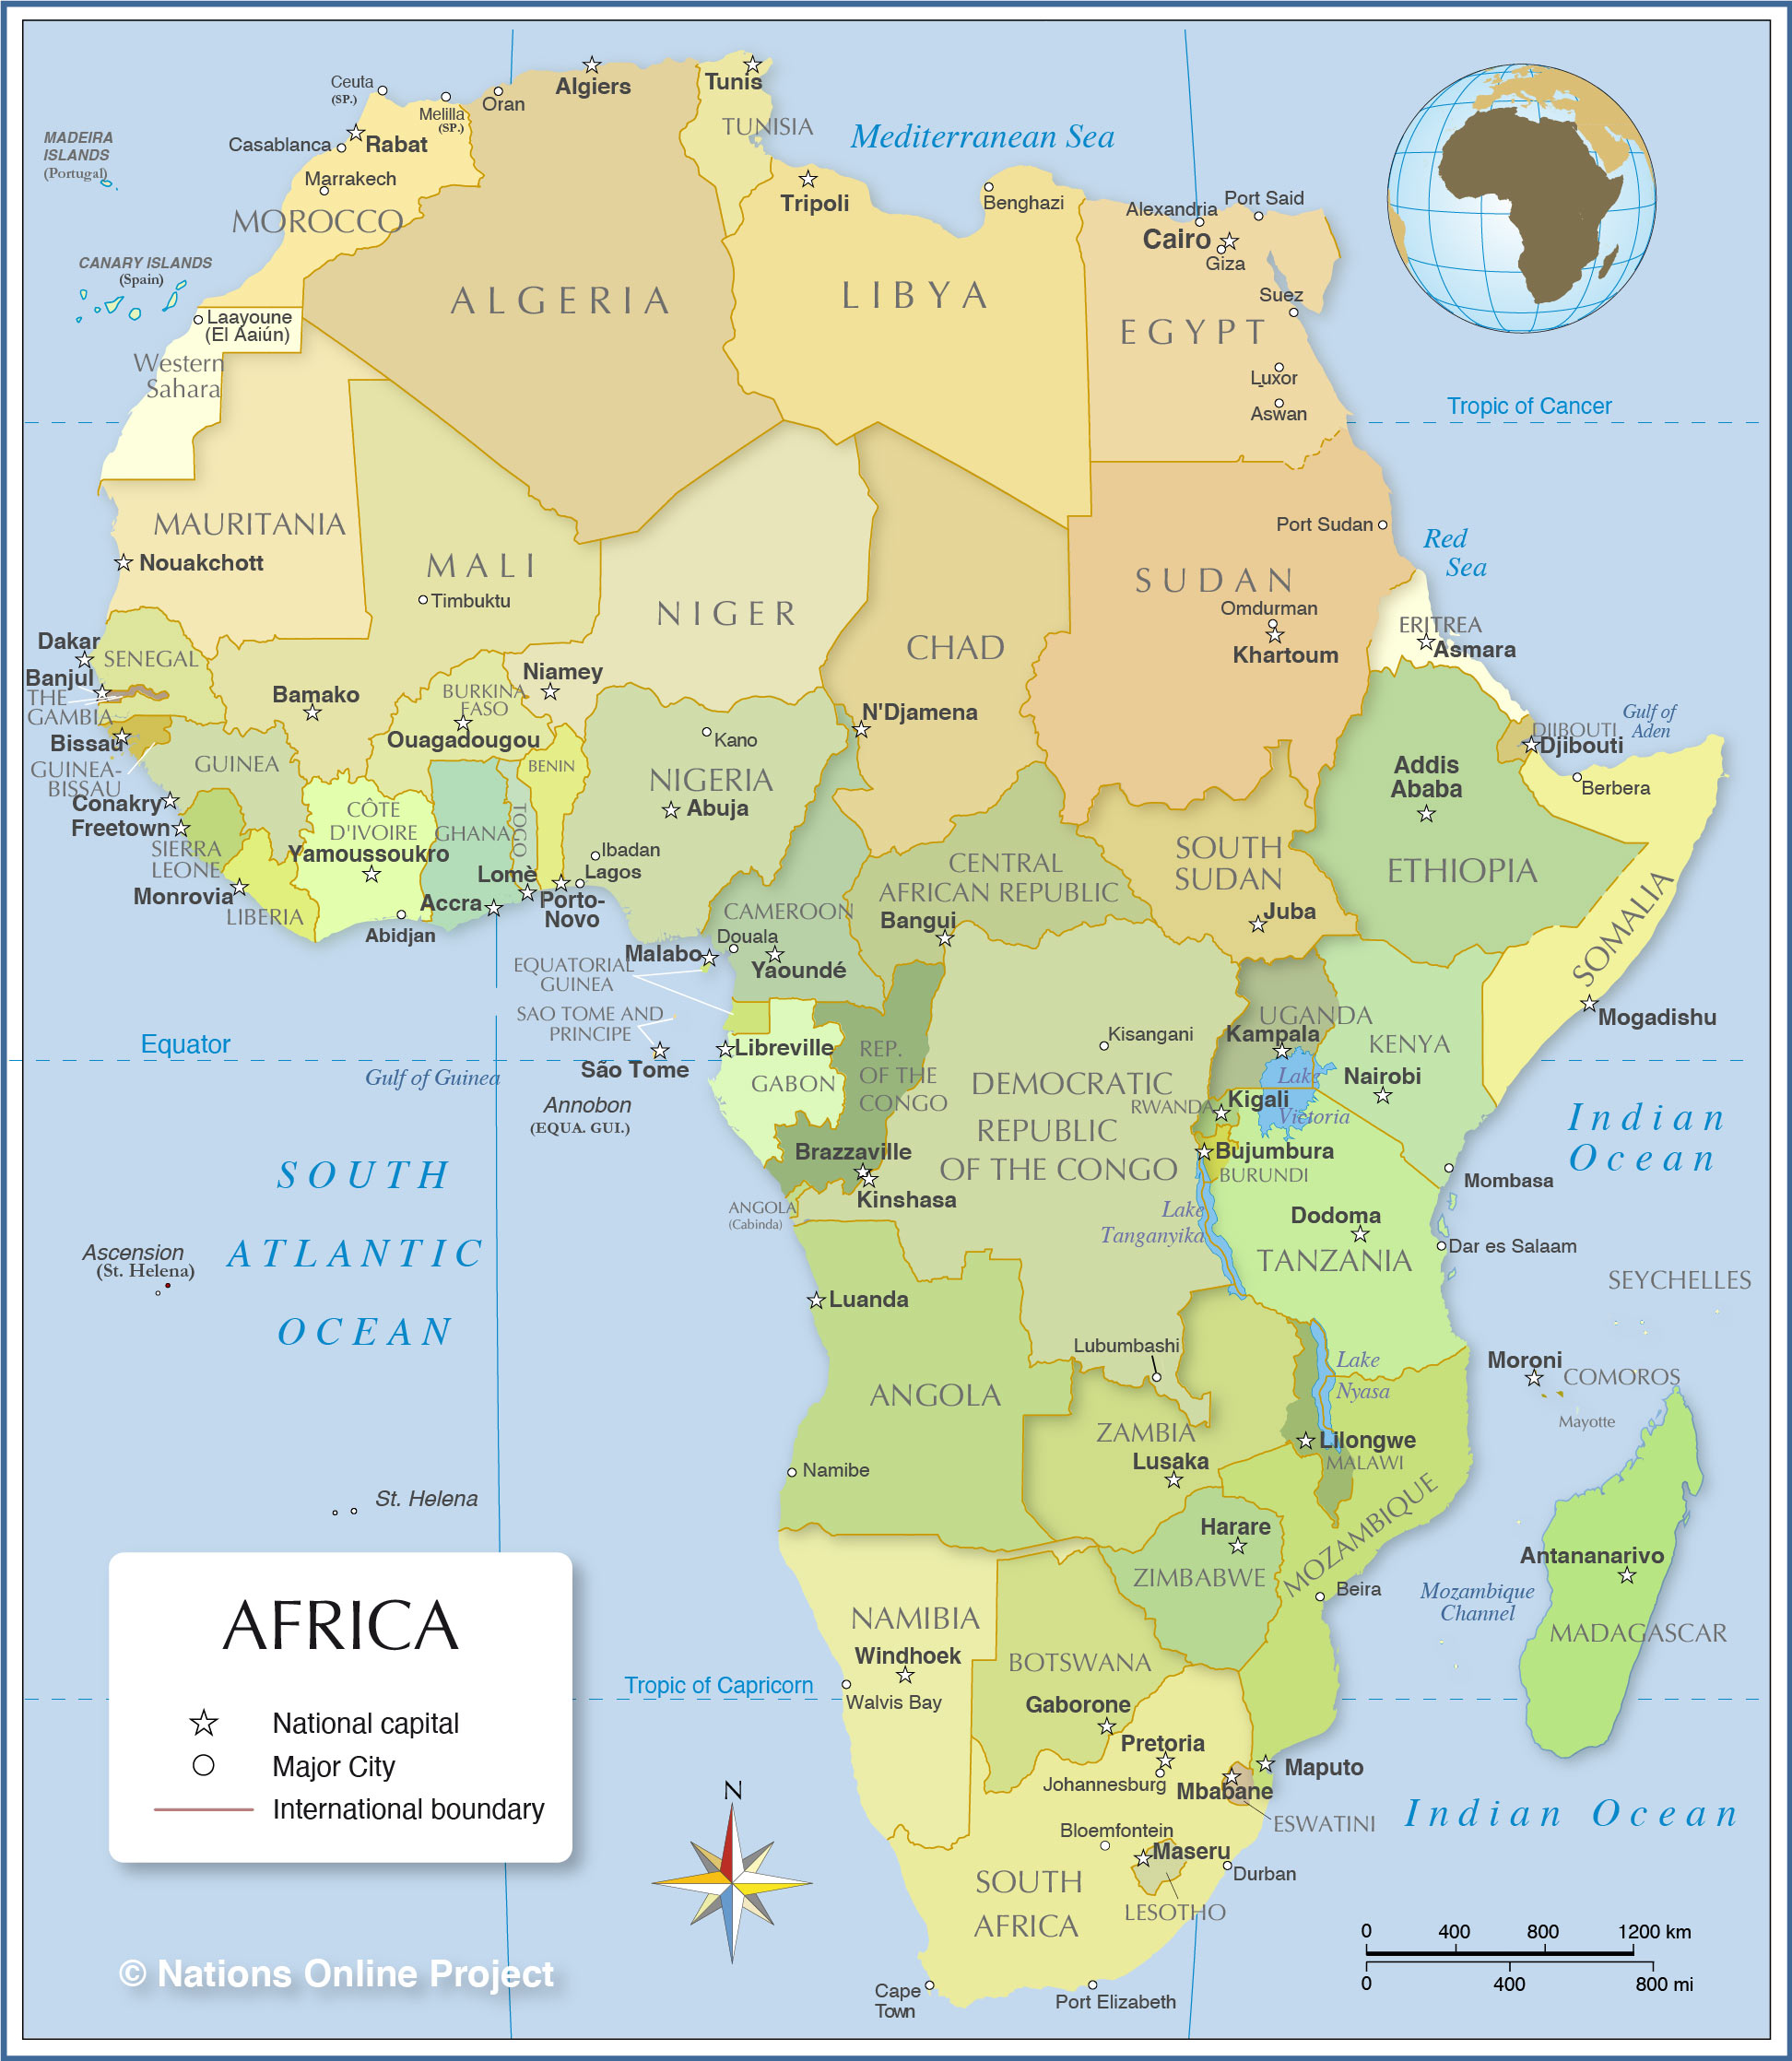 Africa Map Countries And Capitals Political Map of Africa   Nations Online Project